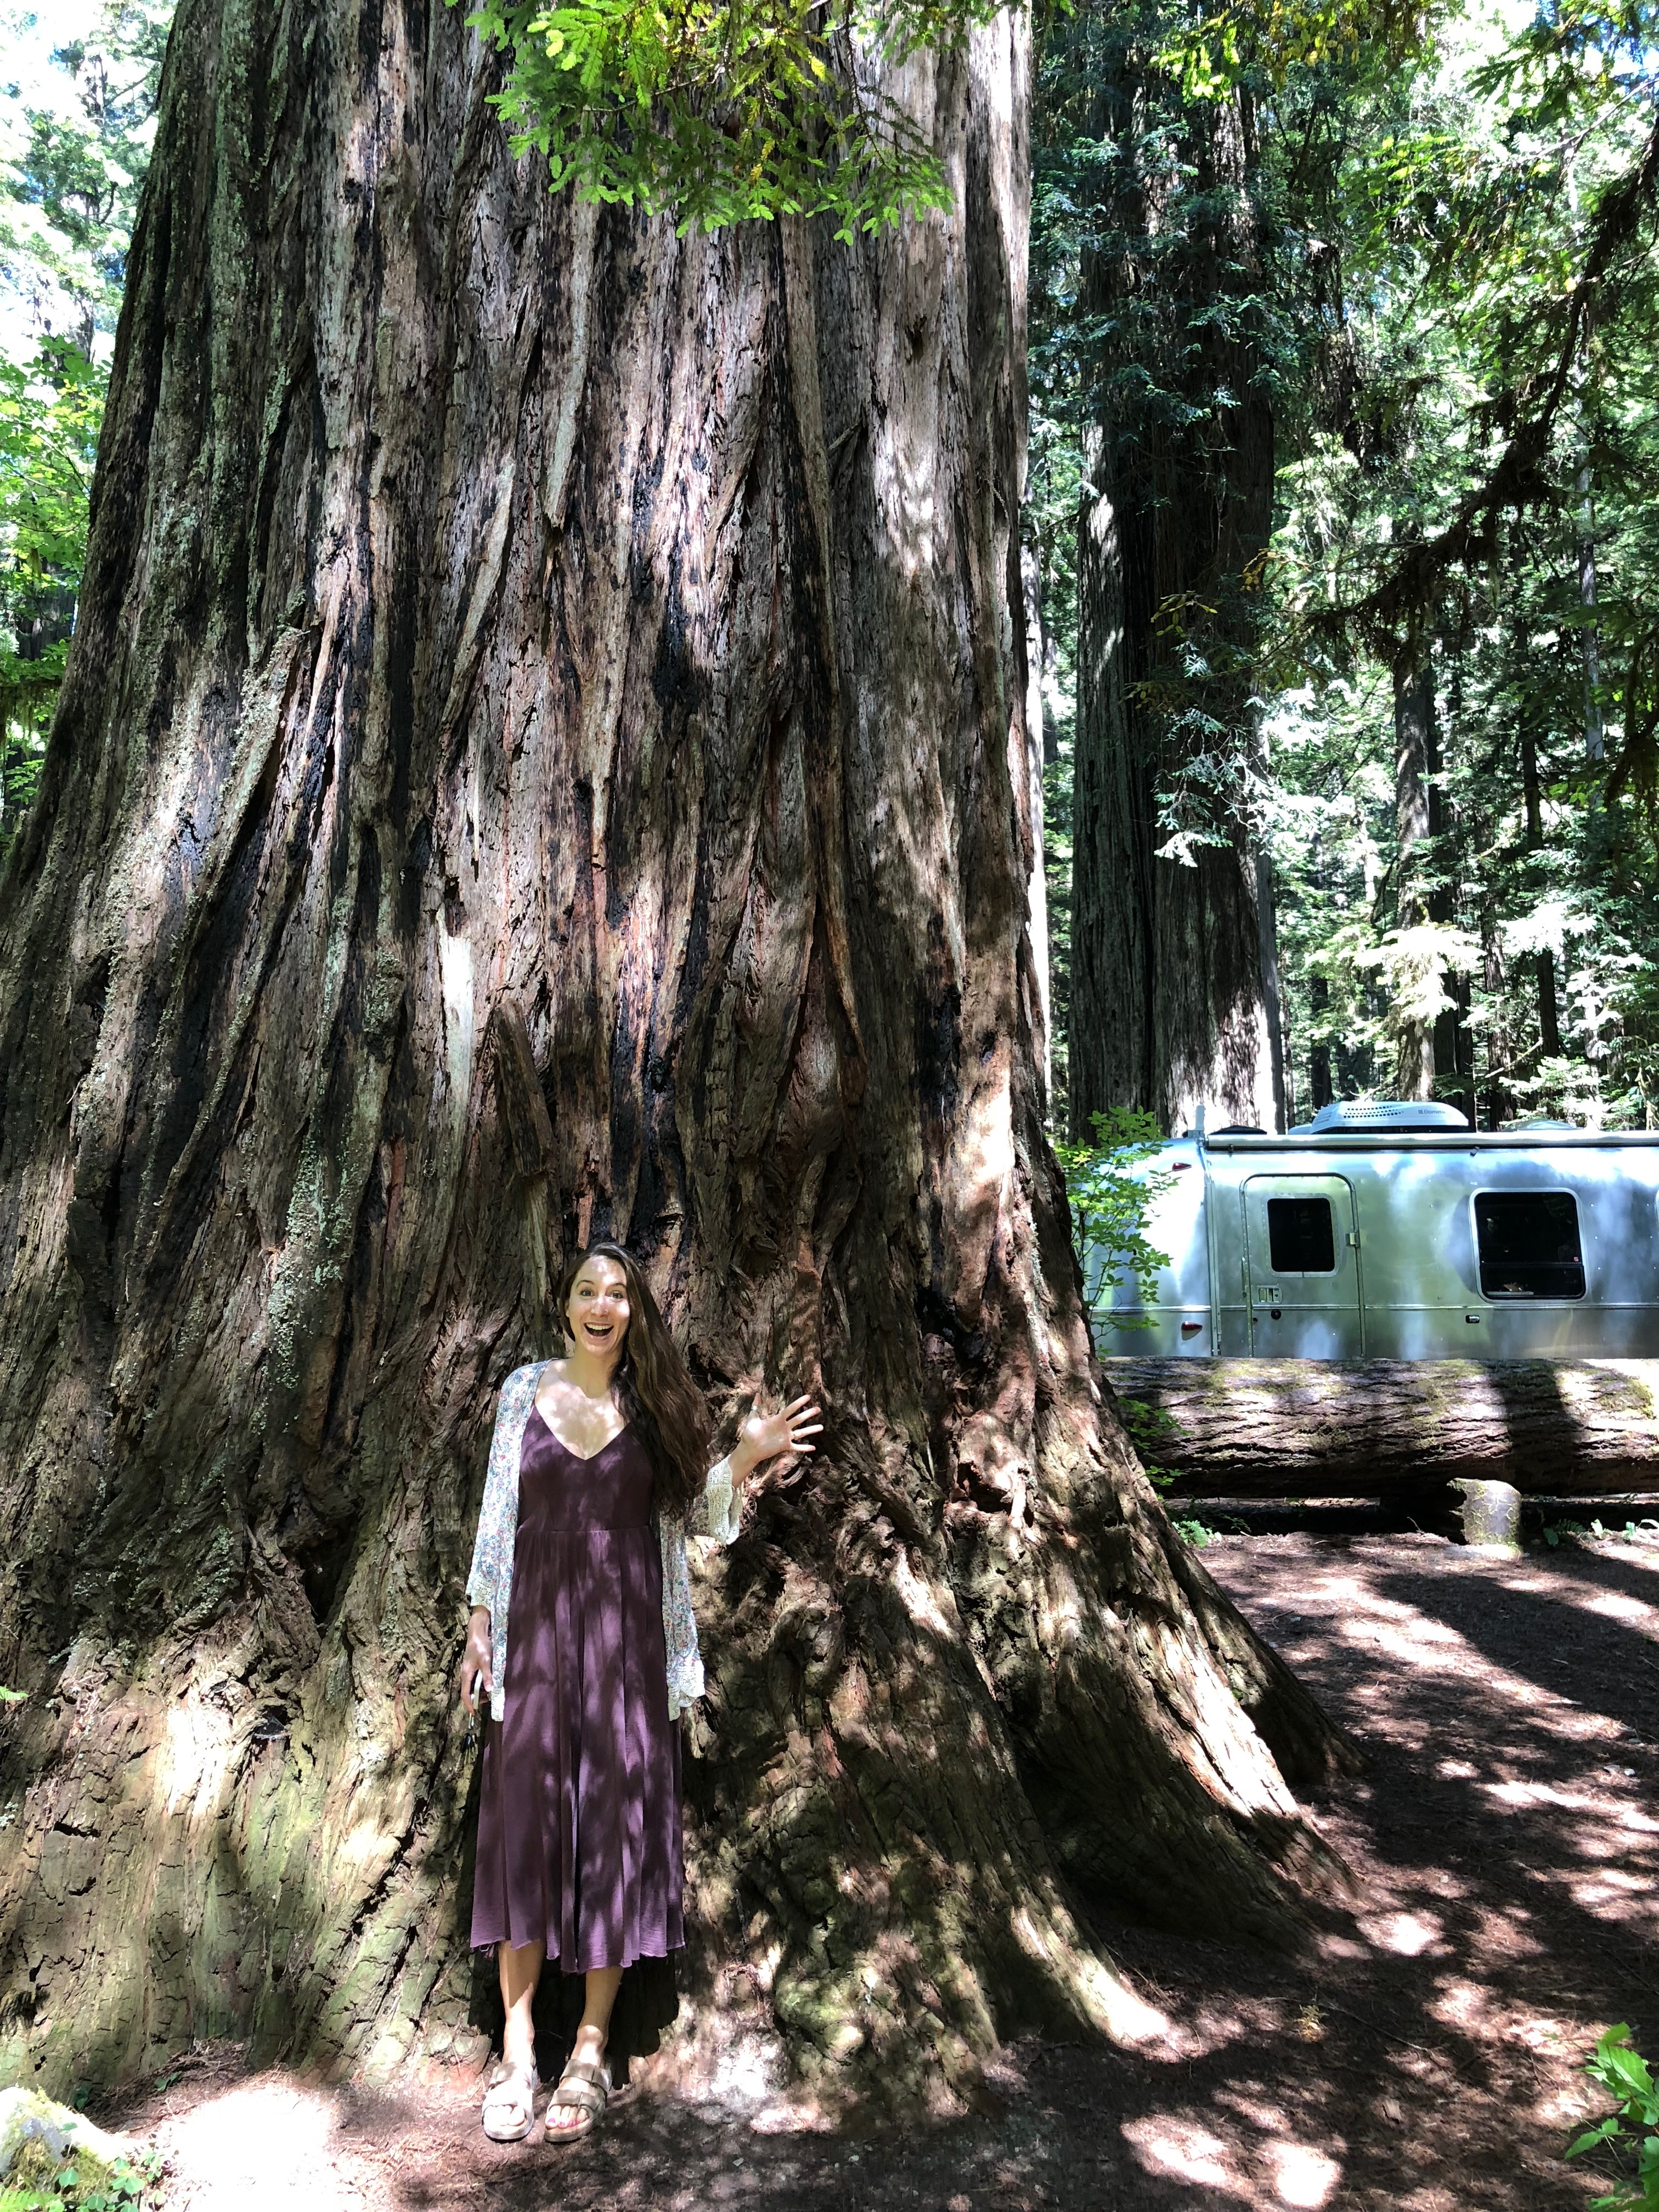 Ariele in front of redwood